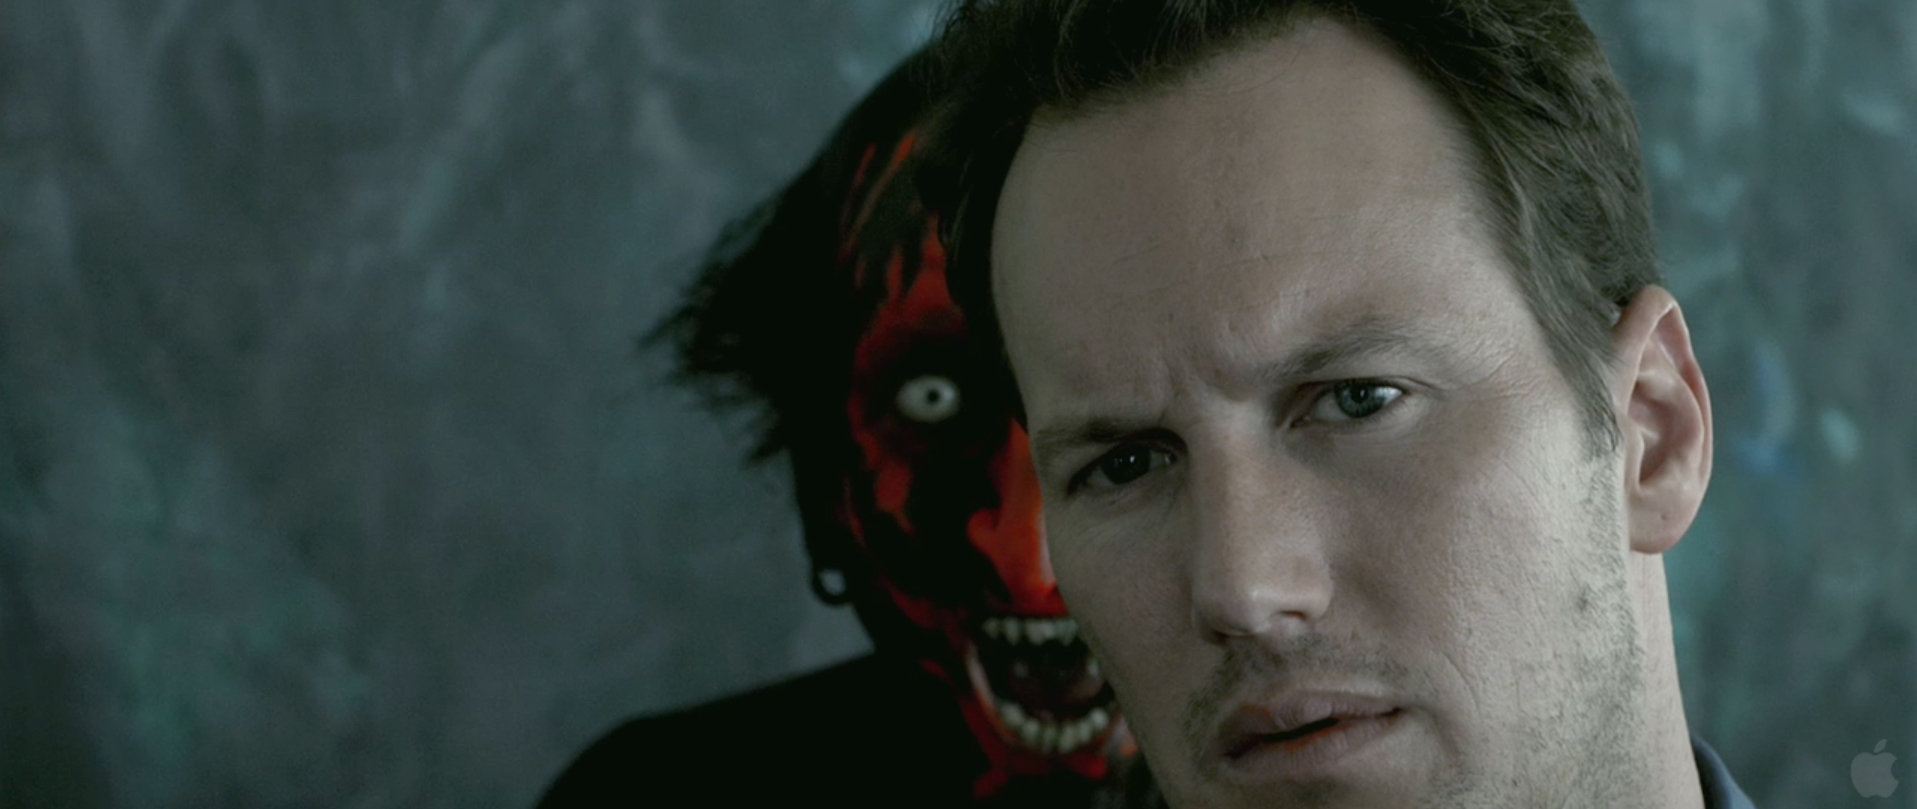 Leigh Whannell To Direct Insidious Chapter 3 Release Date Revealed